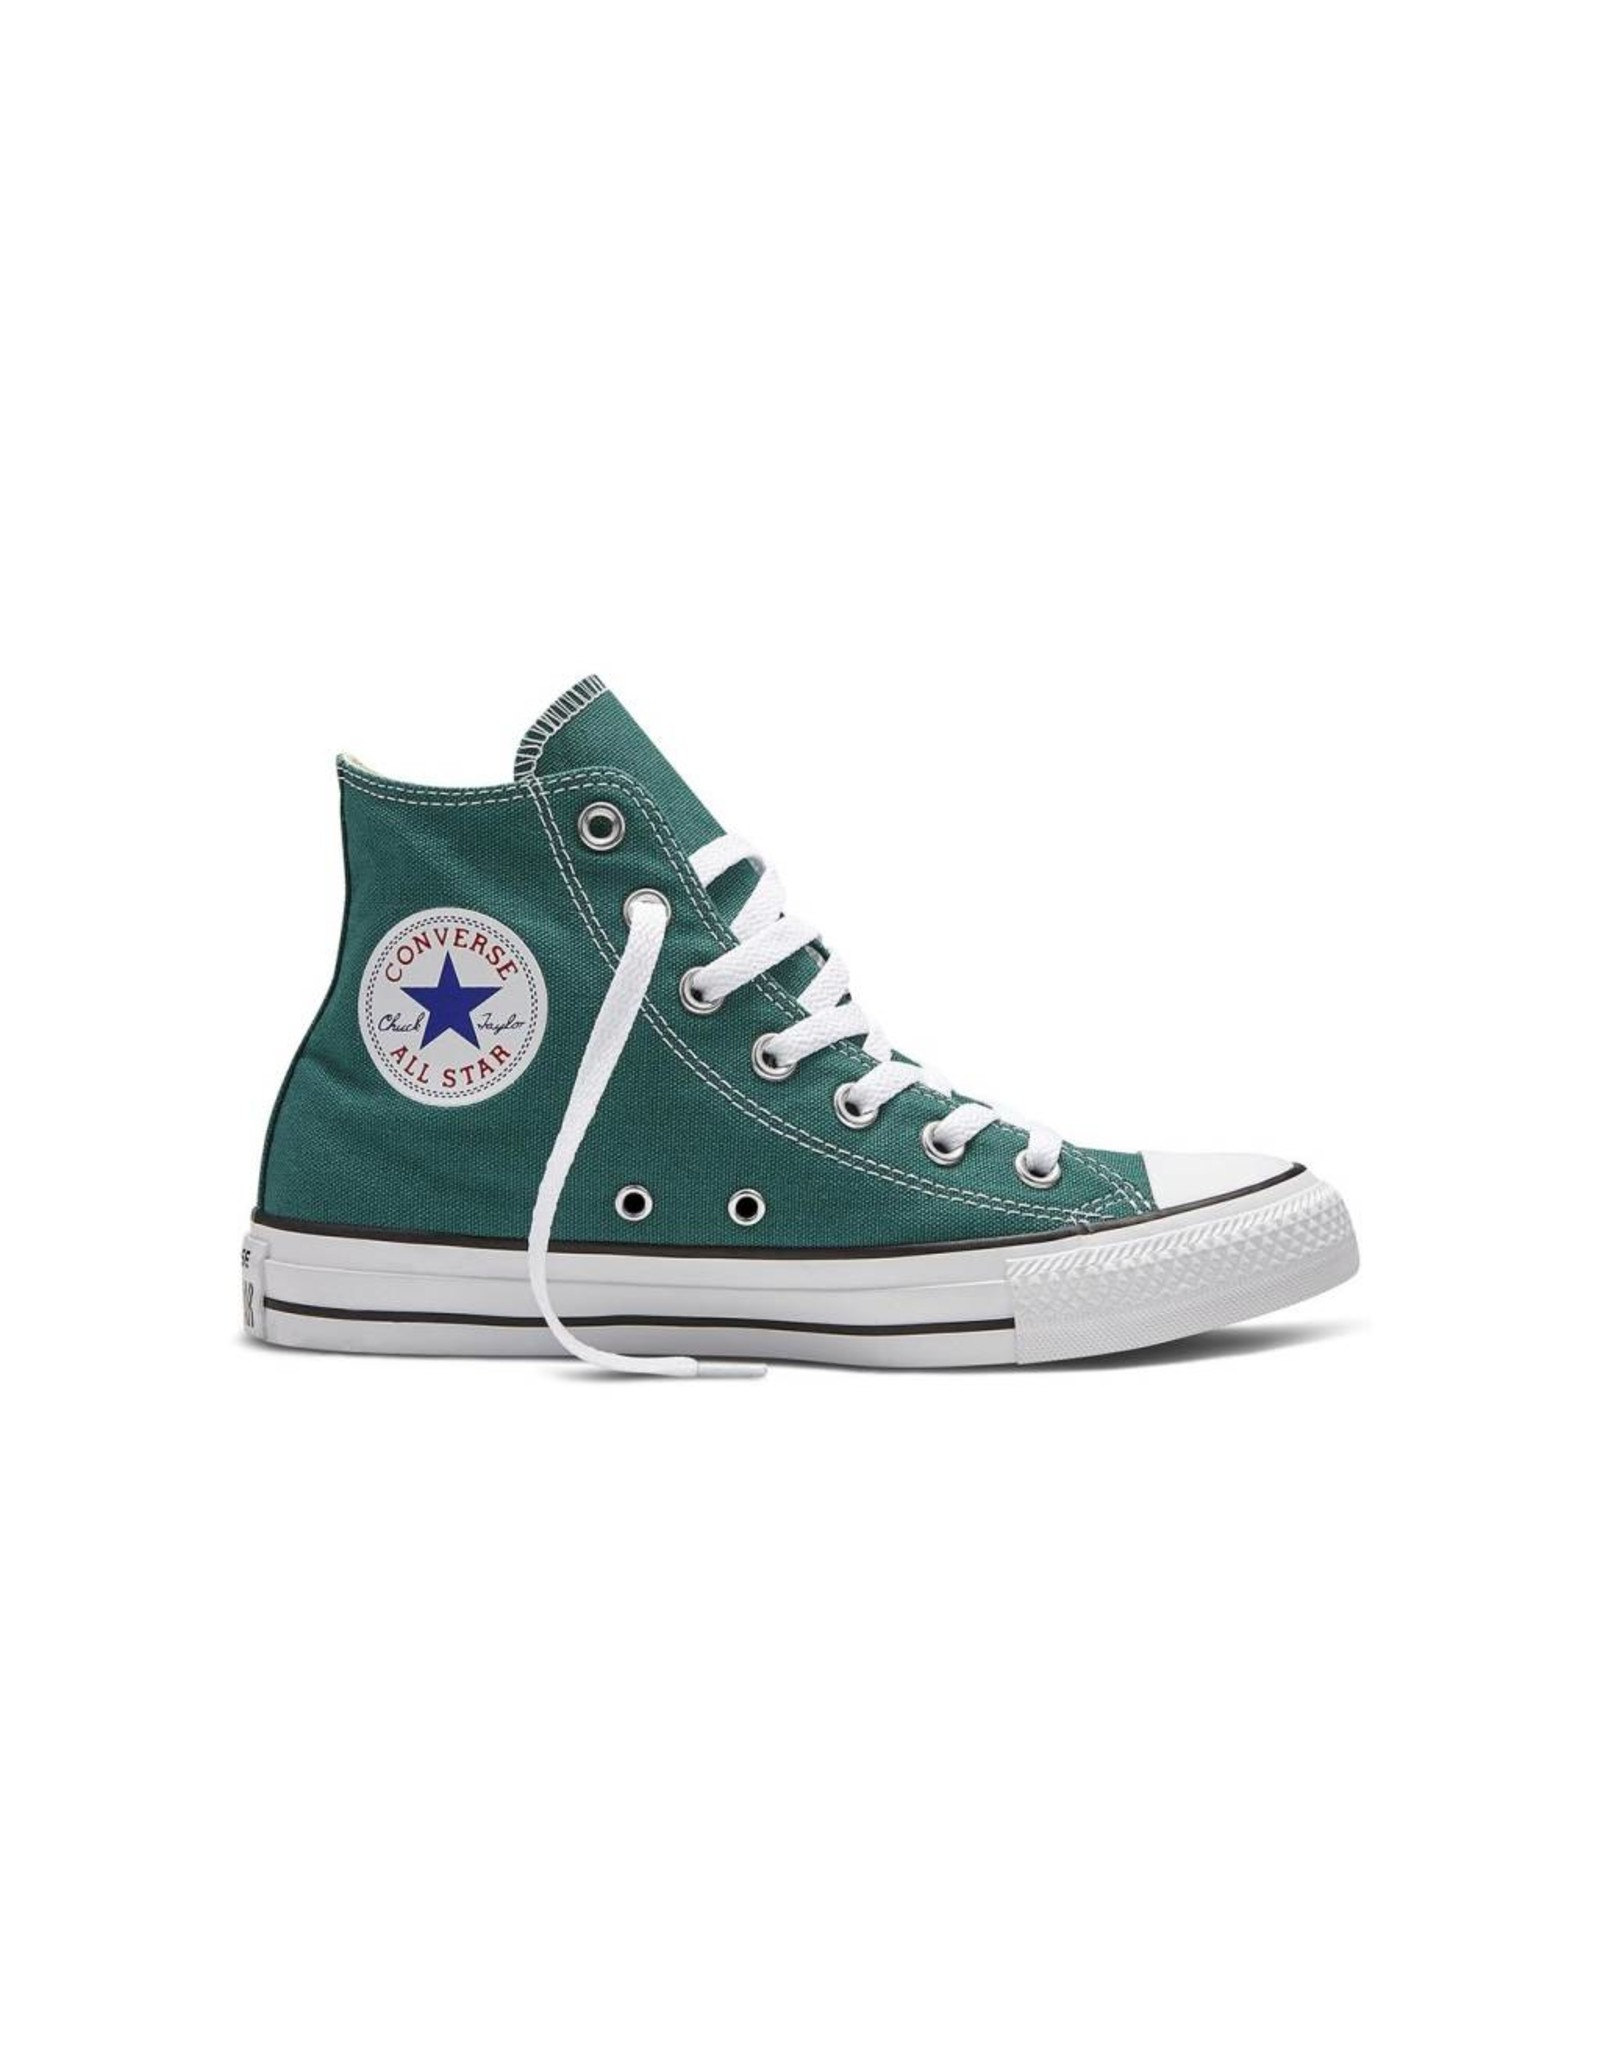 CONVERSE CHUCK TAYLOR ALL STAR HI REBEL TEAL CVREB-351172C